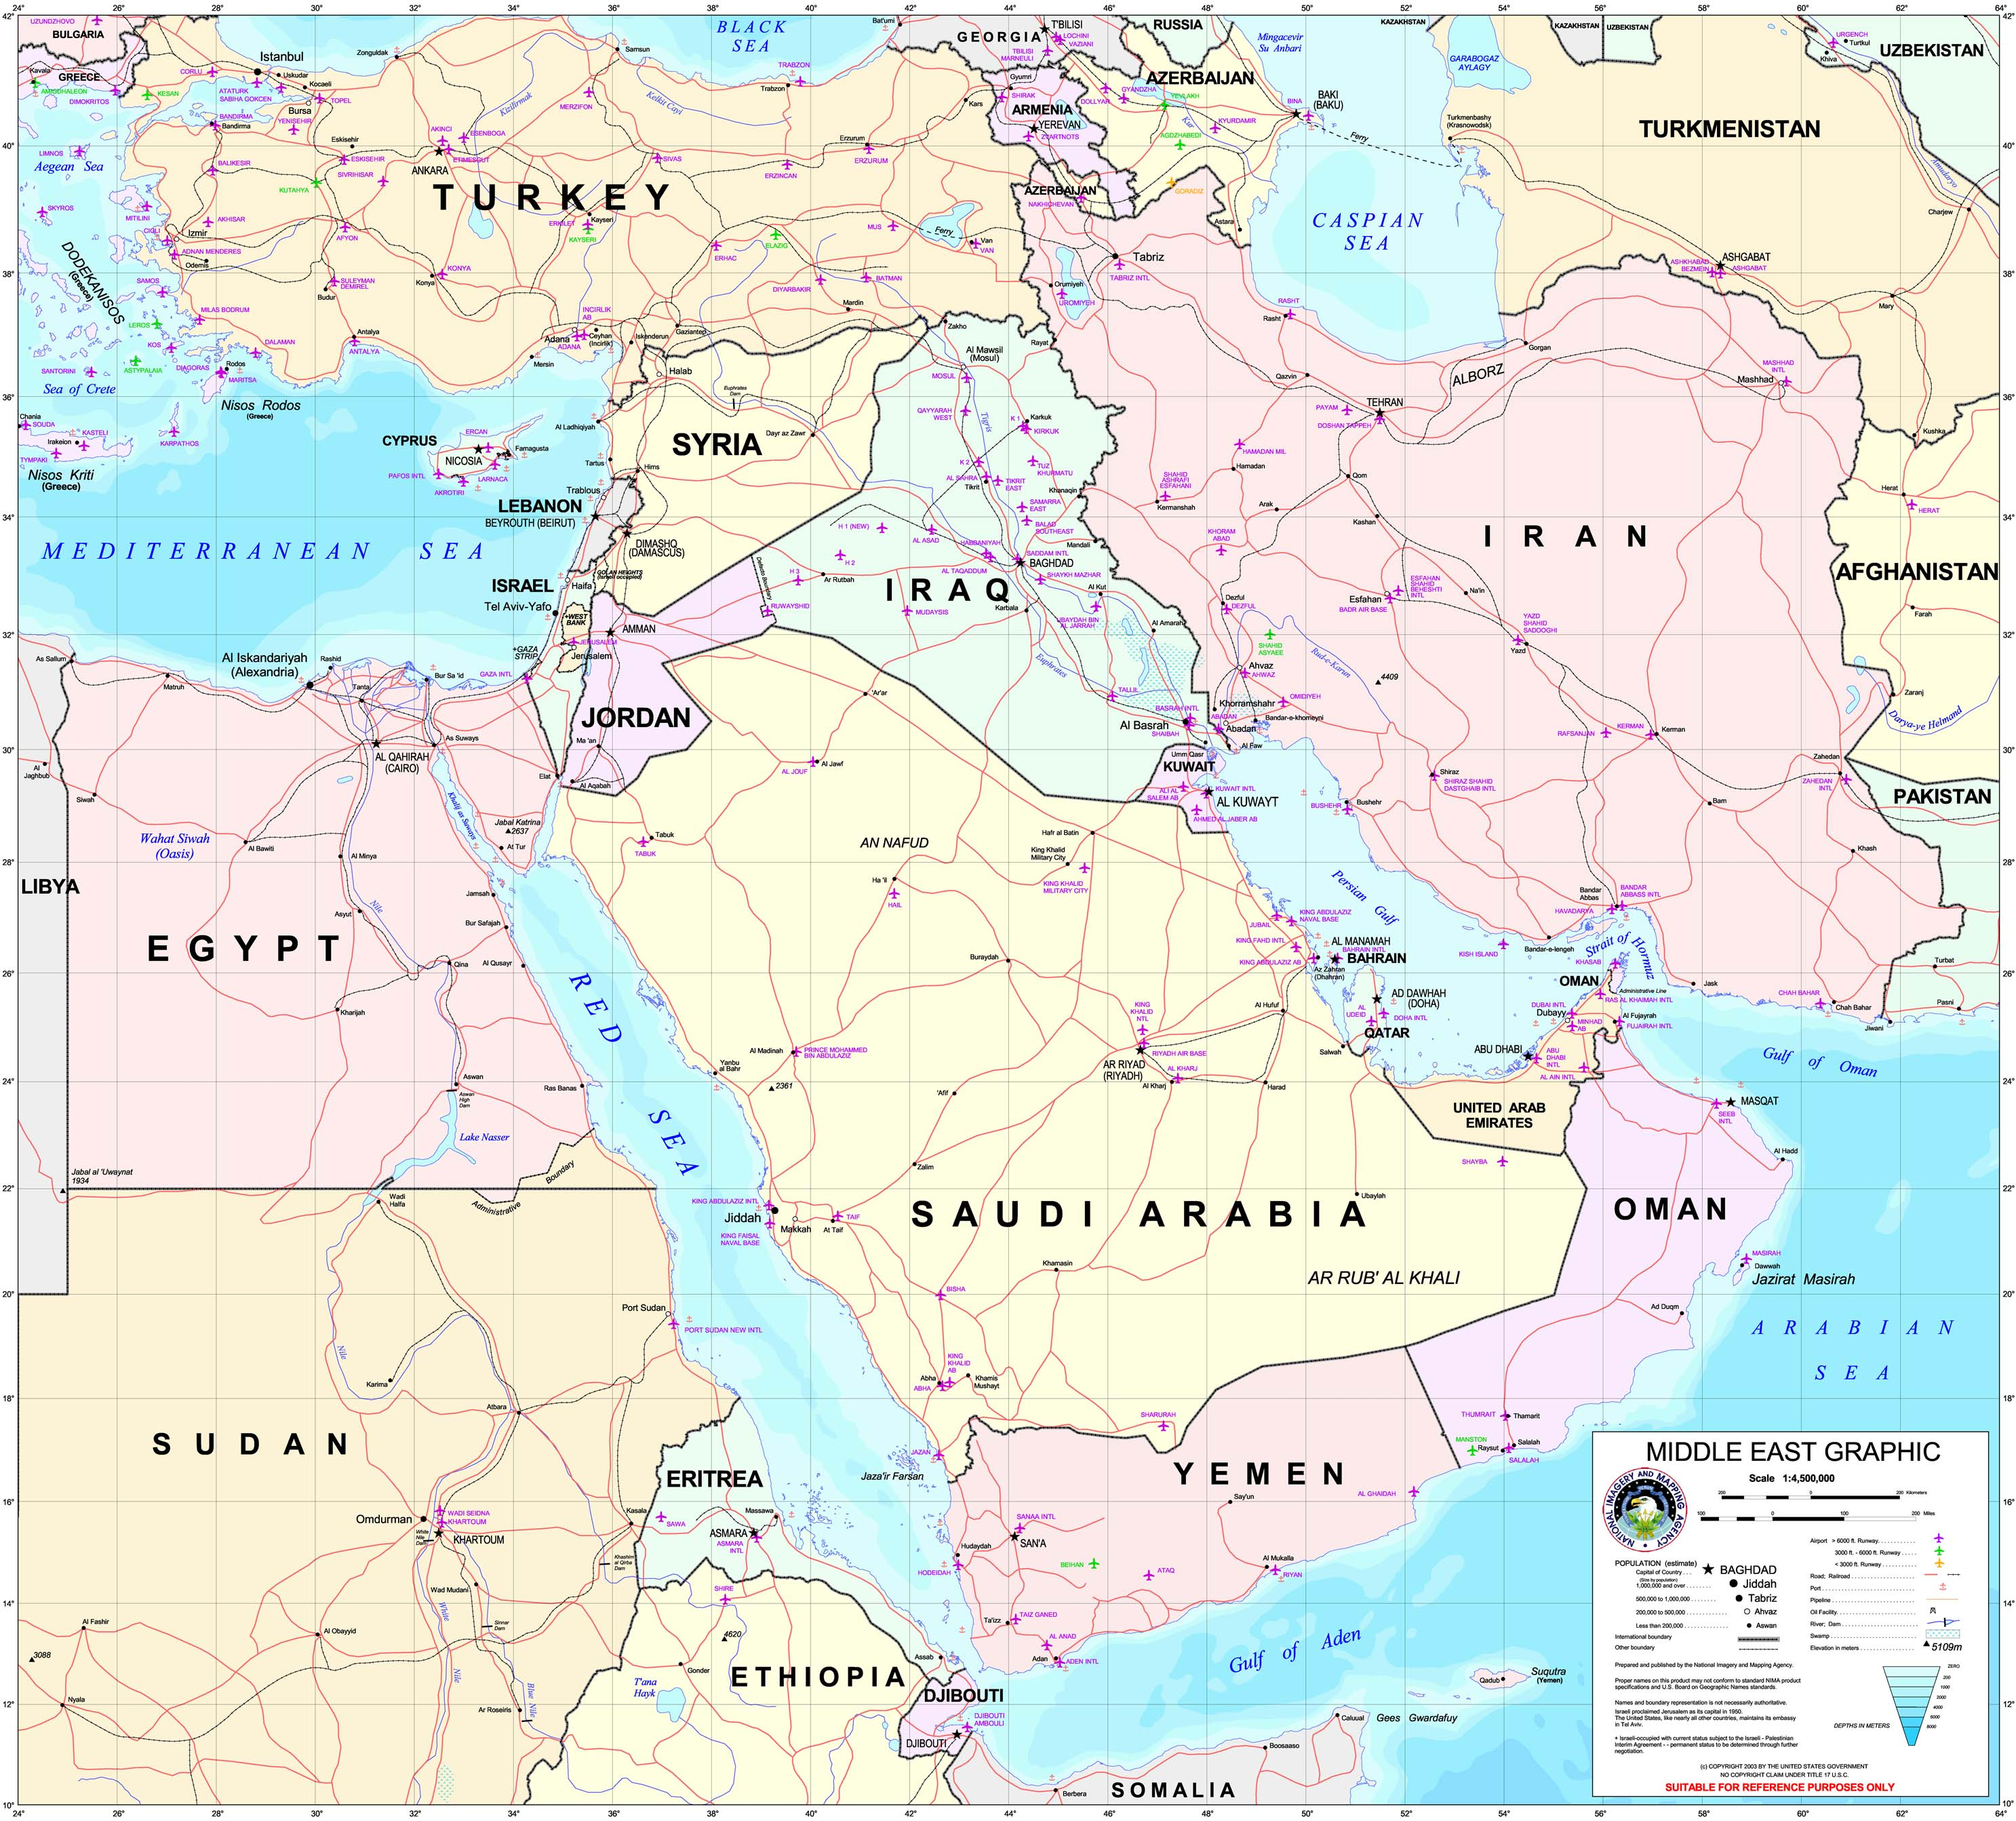 labeled middle east map -